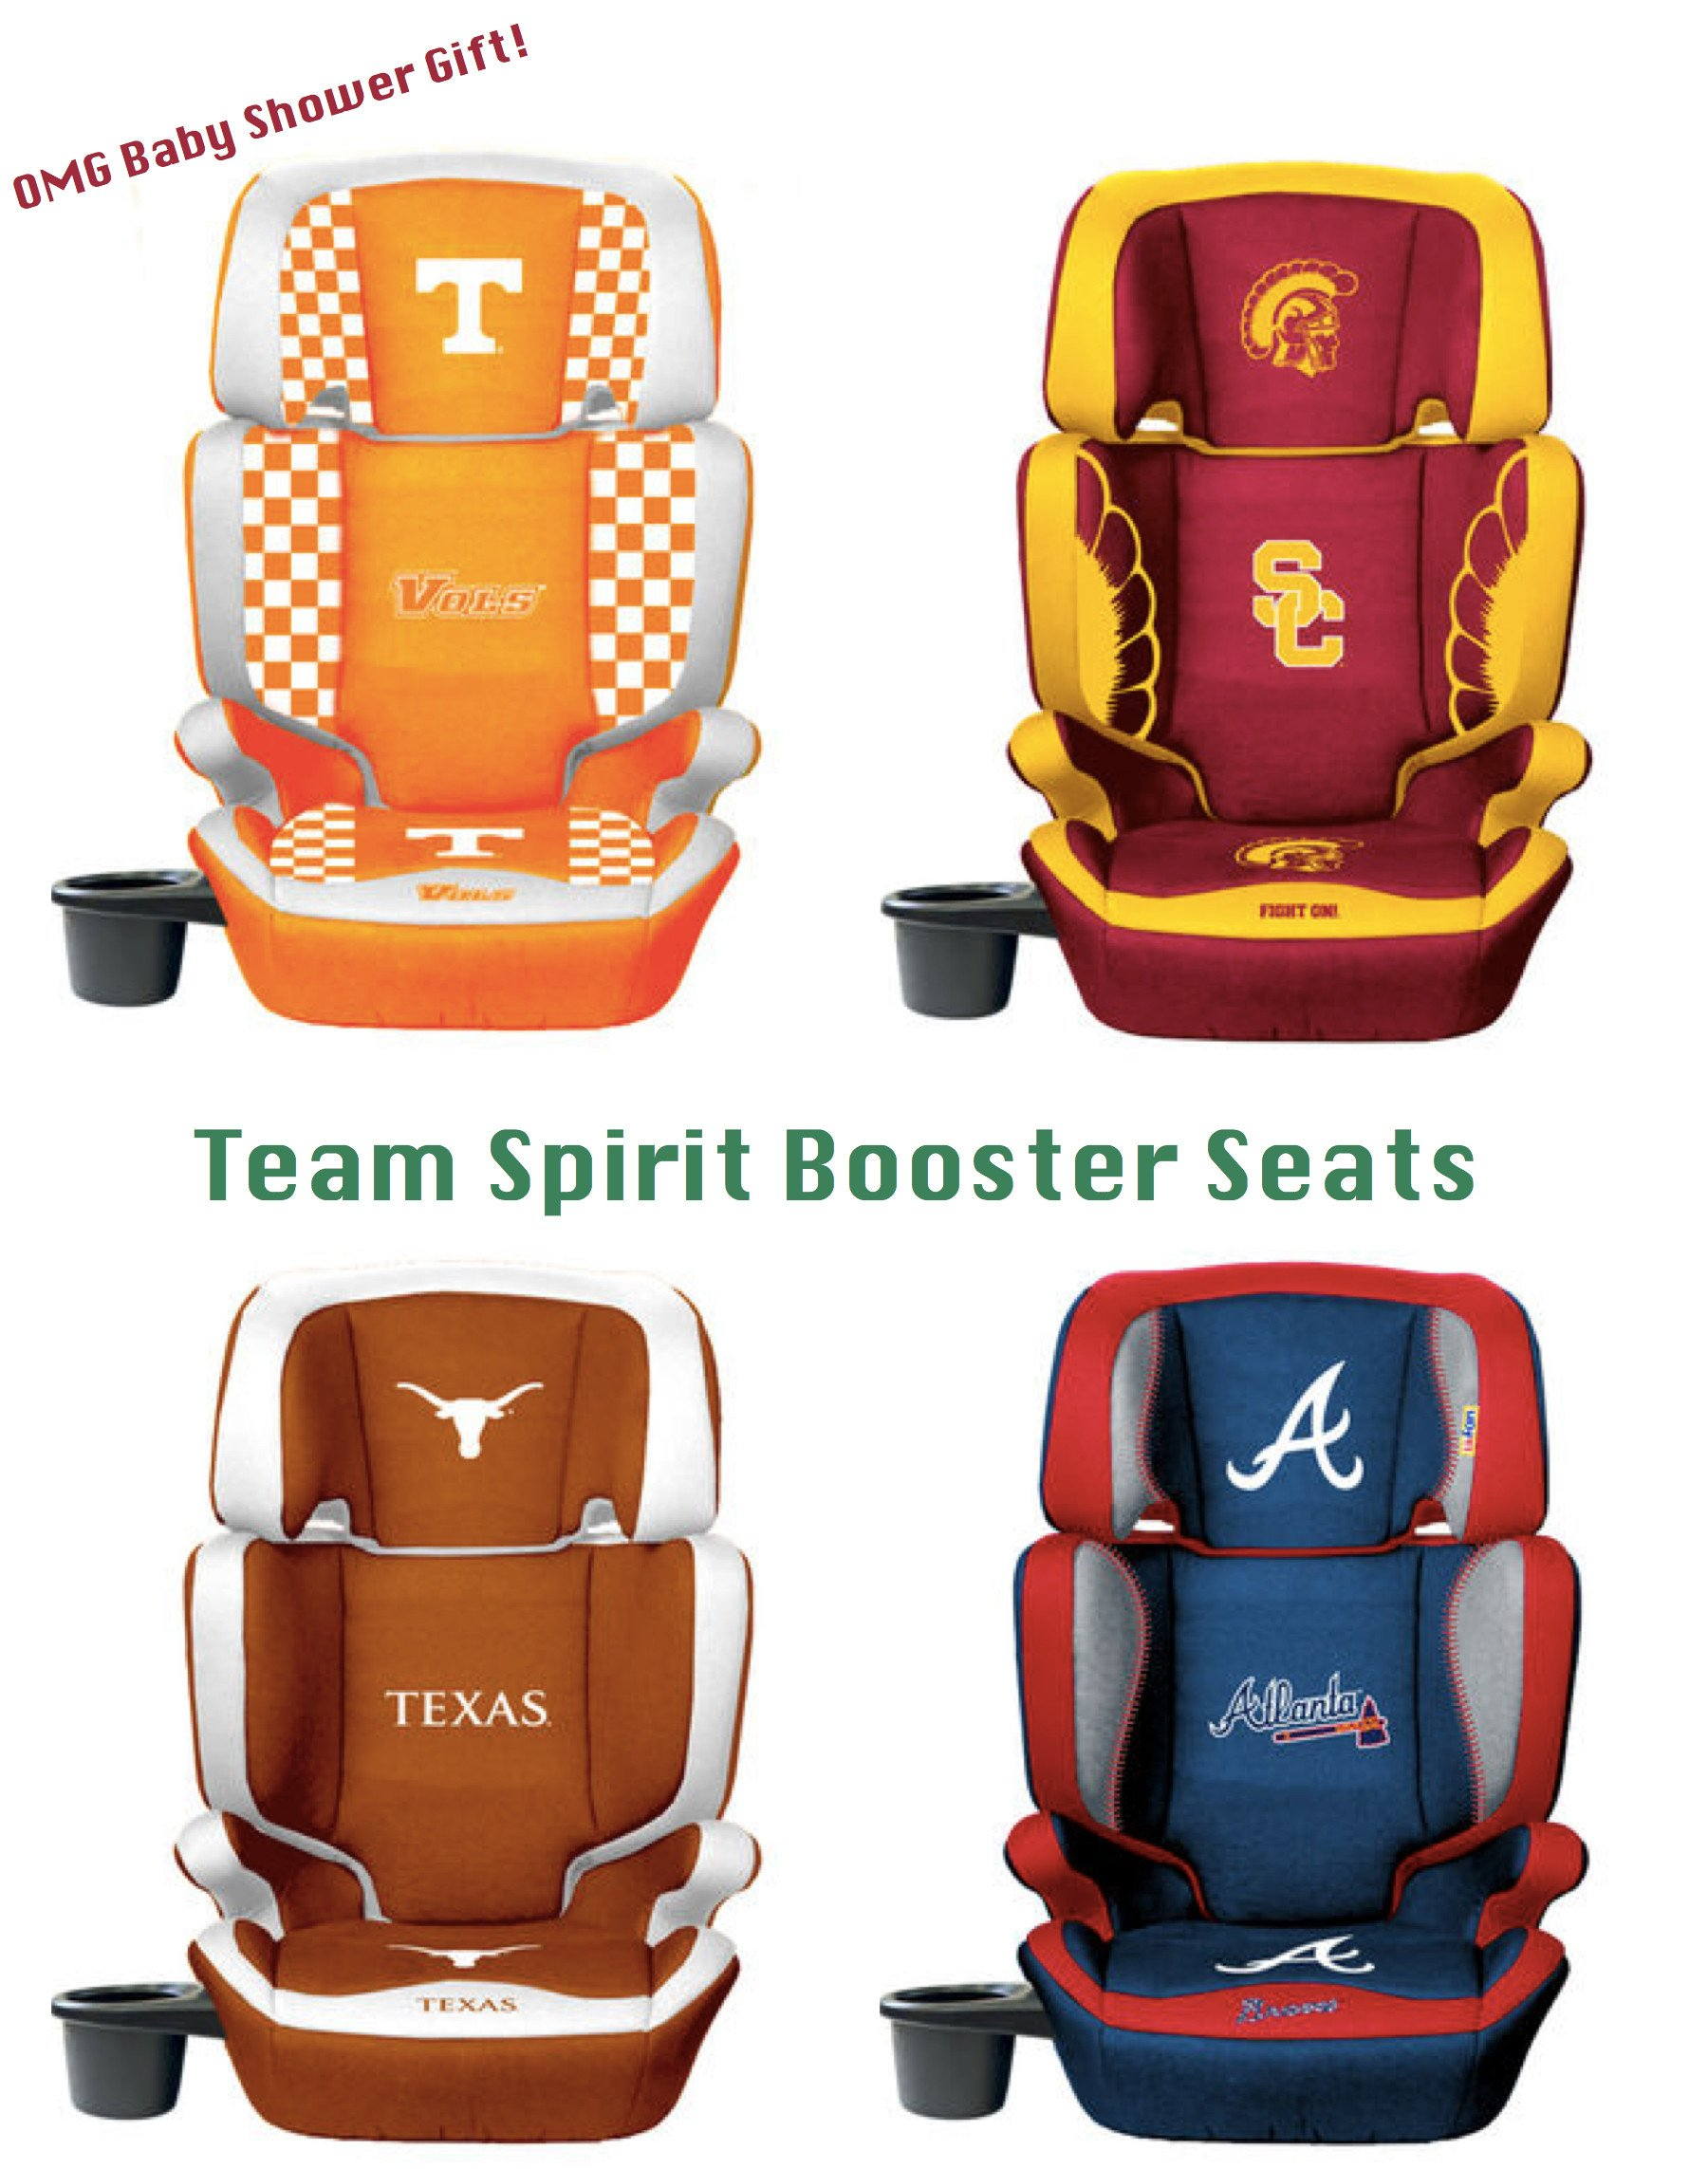 Baby Shower Gifts, Team Spirit Booster Seats